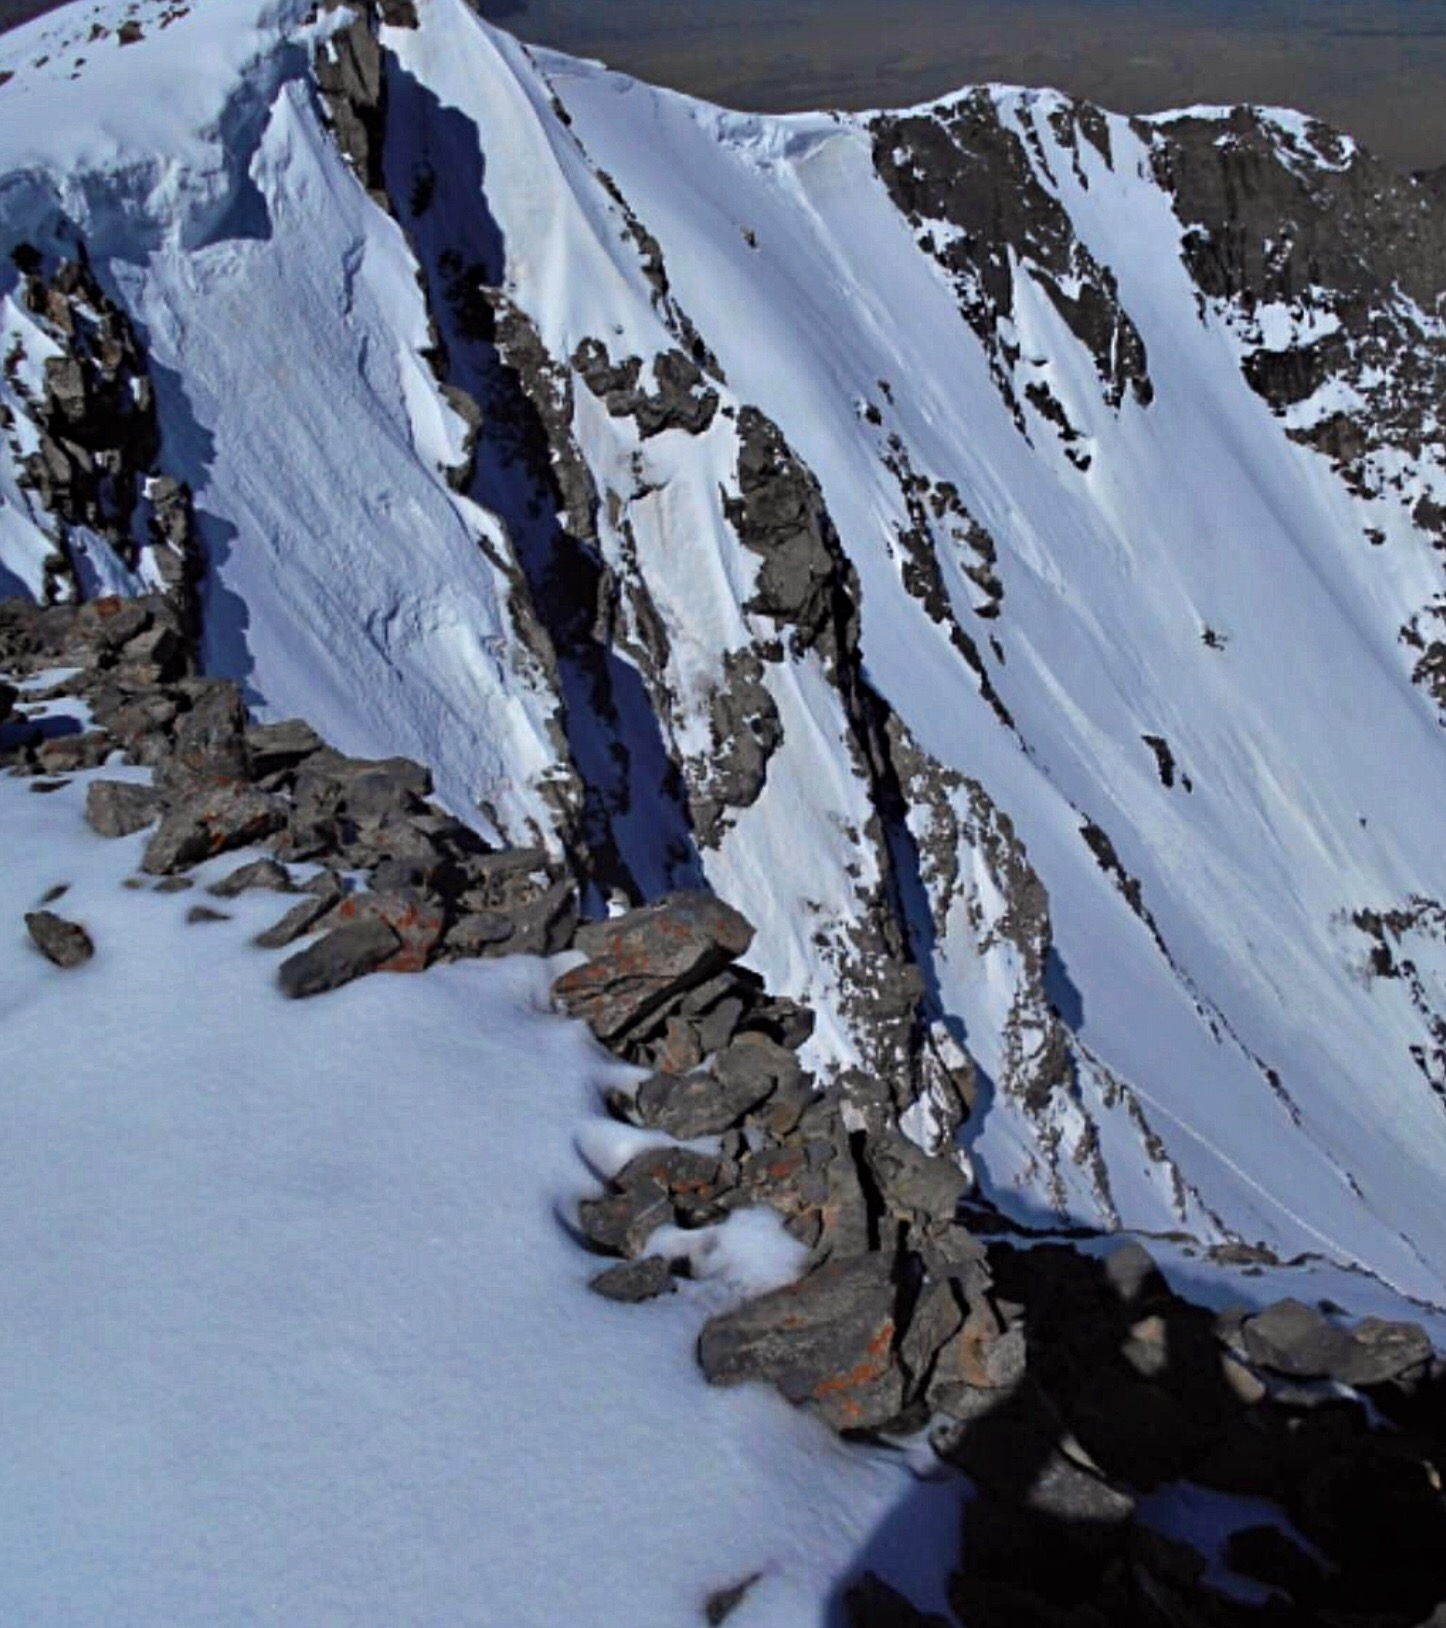 The North Face coming into the sunshine. Our tracks can be seen in the lower right. Pat McGrane Photo